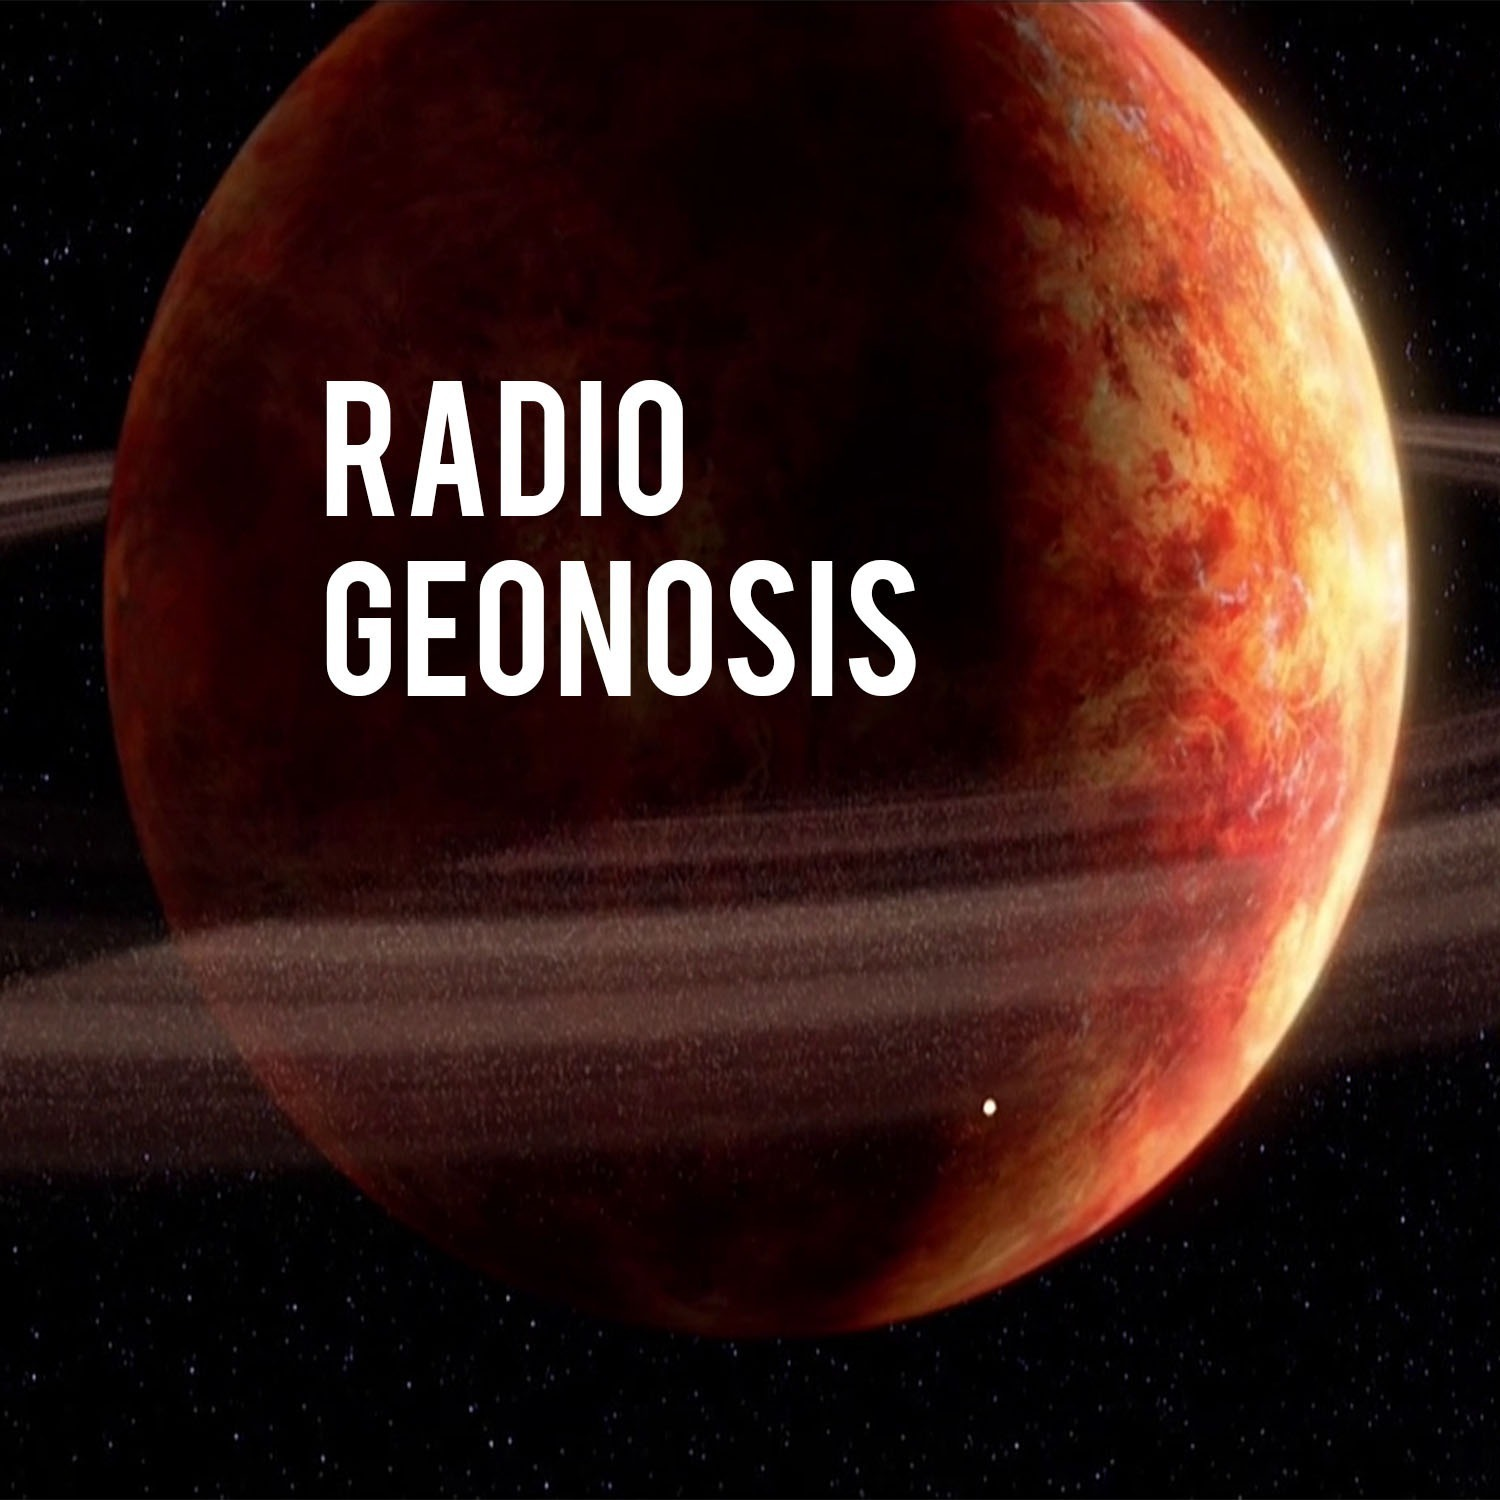 050 - Radio Geonosis Ep. 50 - The Music Of Star Wars